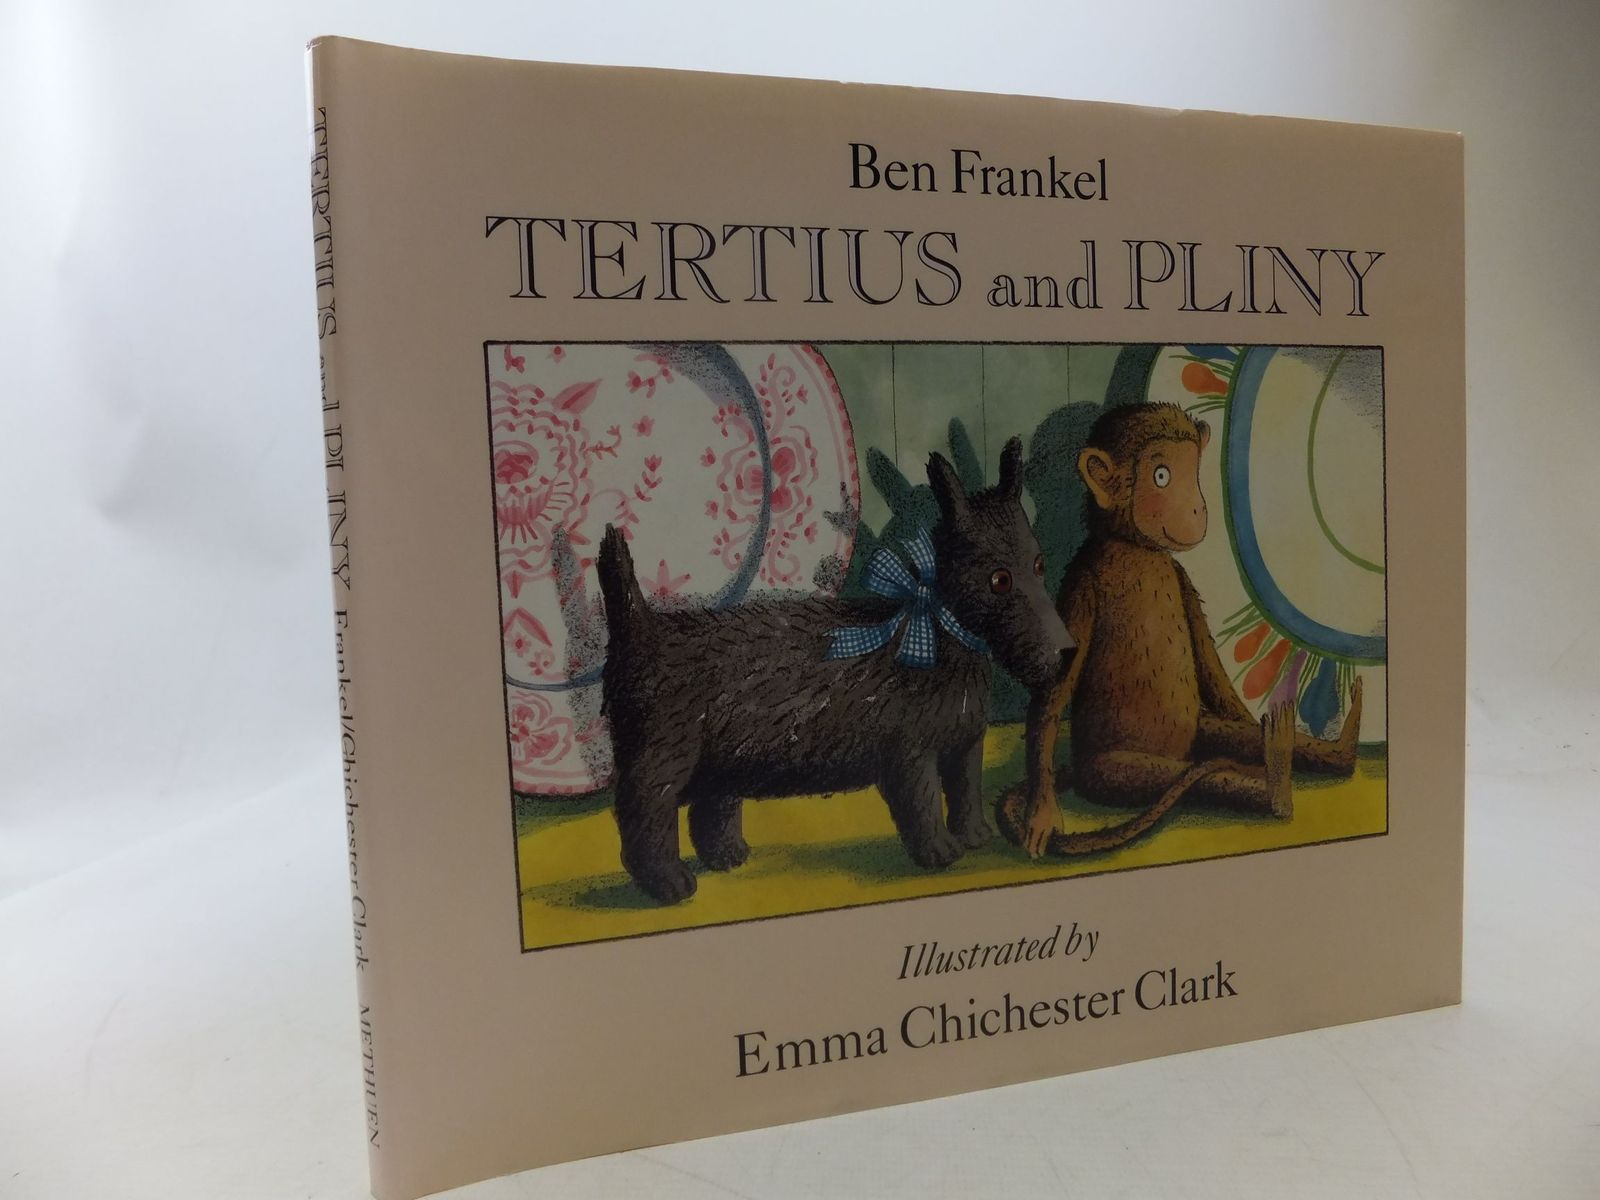 Photo of TERTIUS AND PLINY written by Frankel, Ben illustrated by Clark, Emma Chichester published by Methuen Children's Books (STOCK CODE: 1710266)  for sale by Stella & Rose's Books